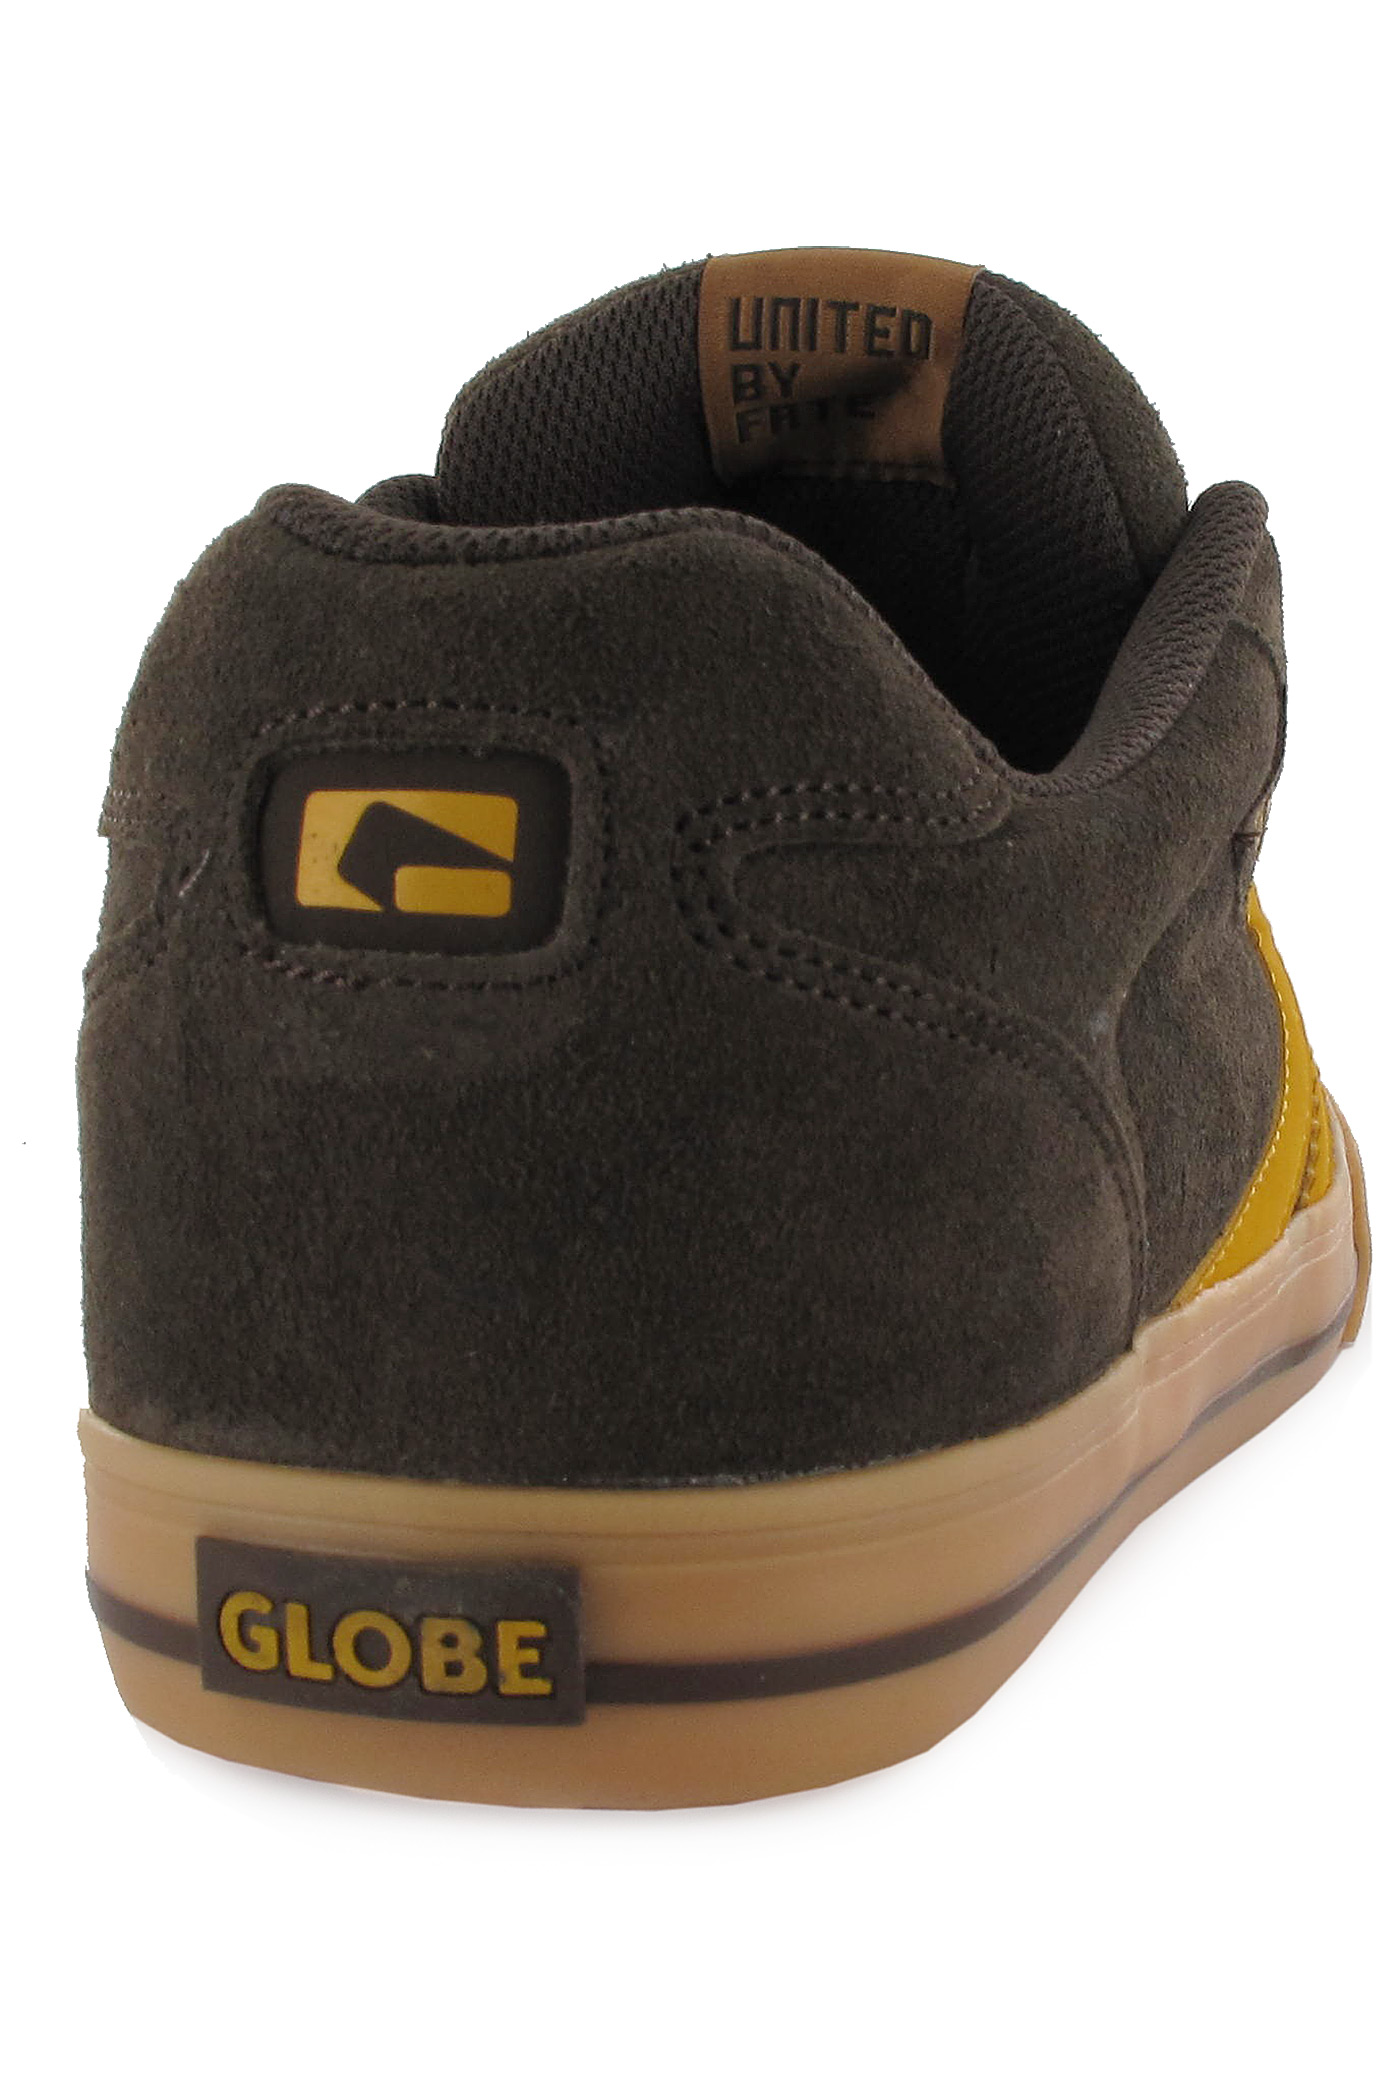 Shoes Skateboard shoes and Sneakers Globe Encore 2 Shoe (choco tequila